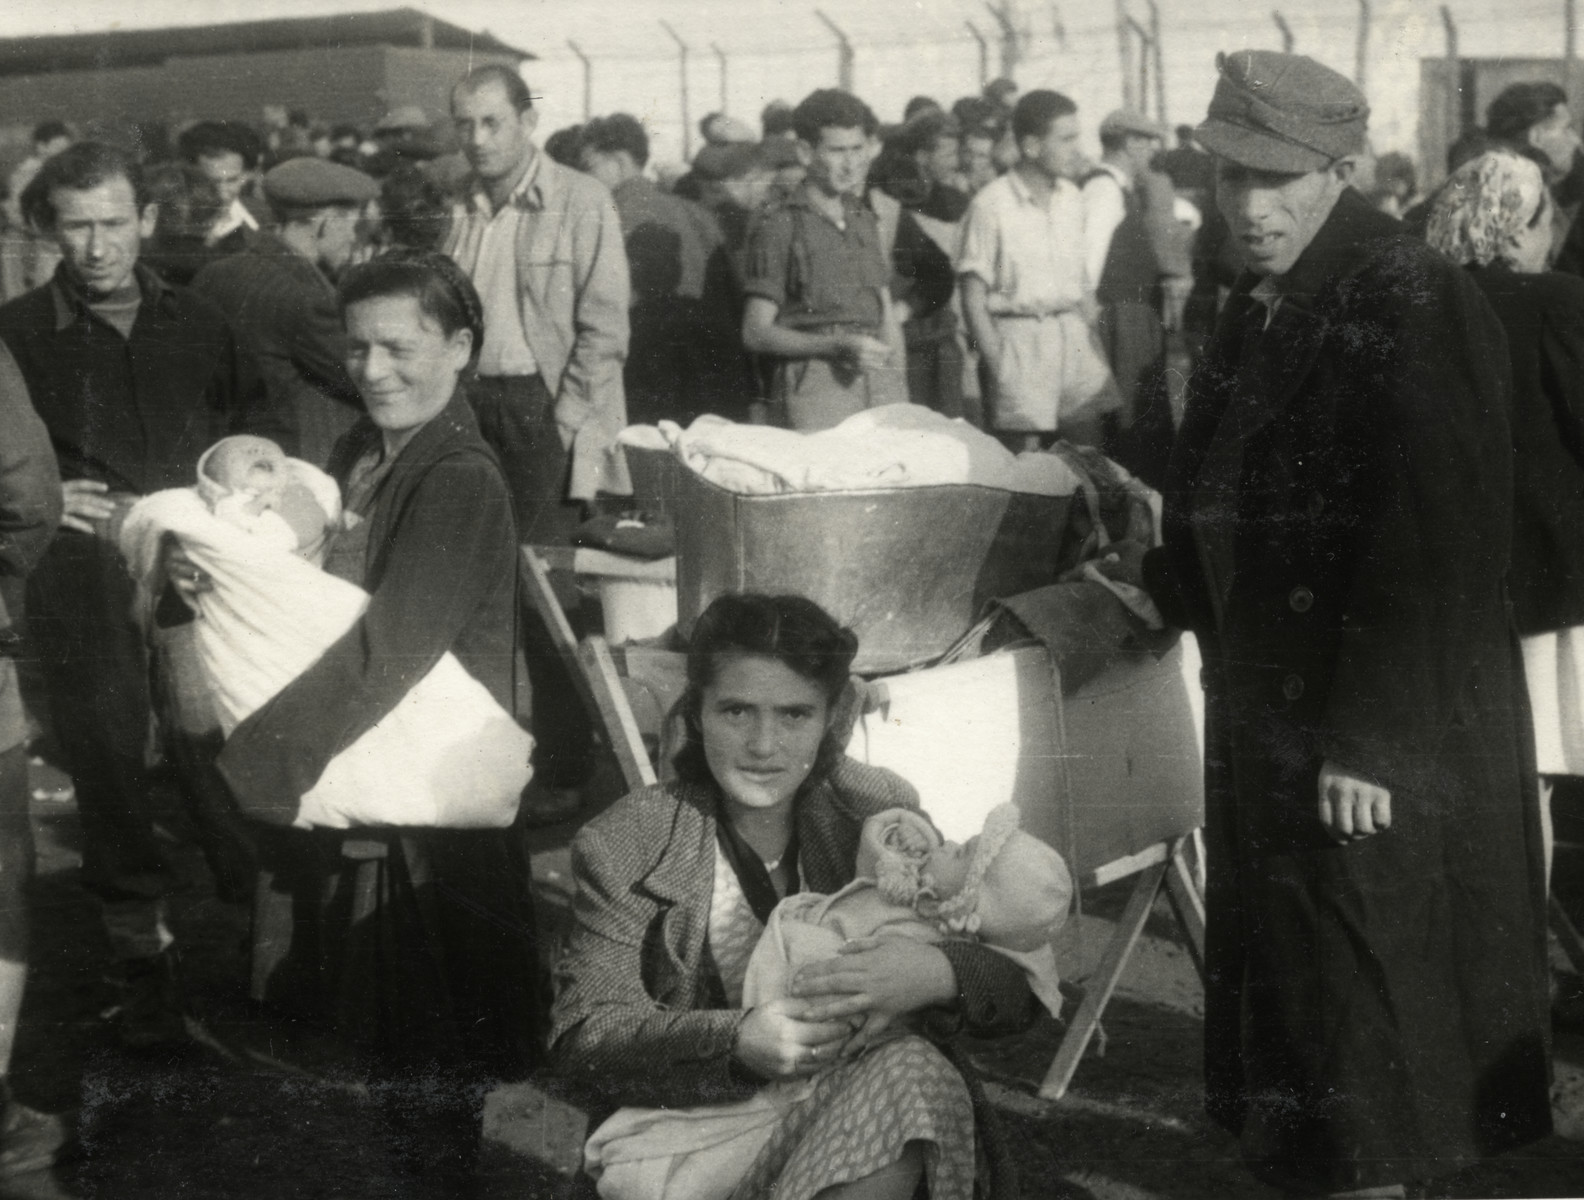 Refugees in a camp in Cyprus, some mothers carrying newborn babies, crowd behind the barbed wire fence.